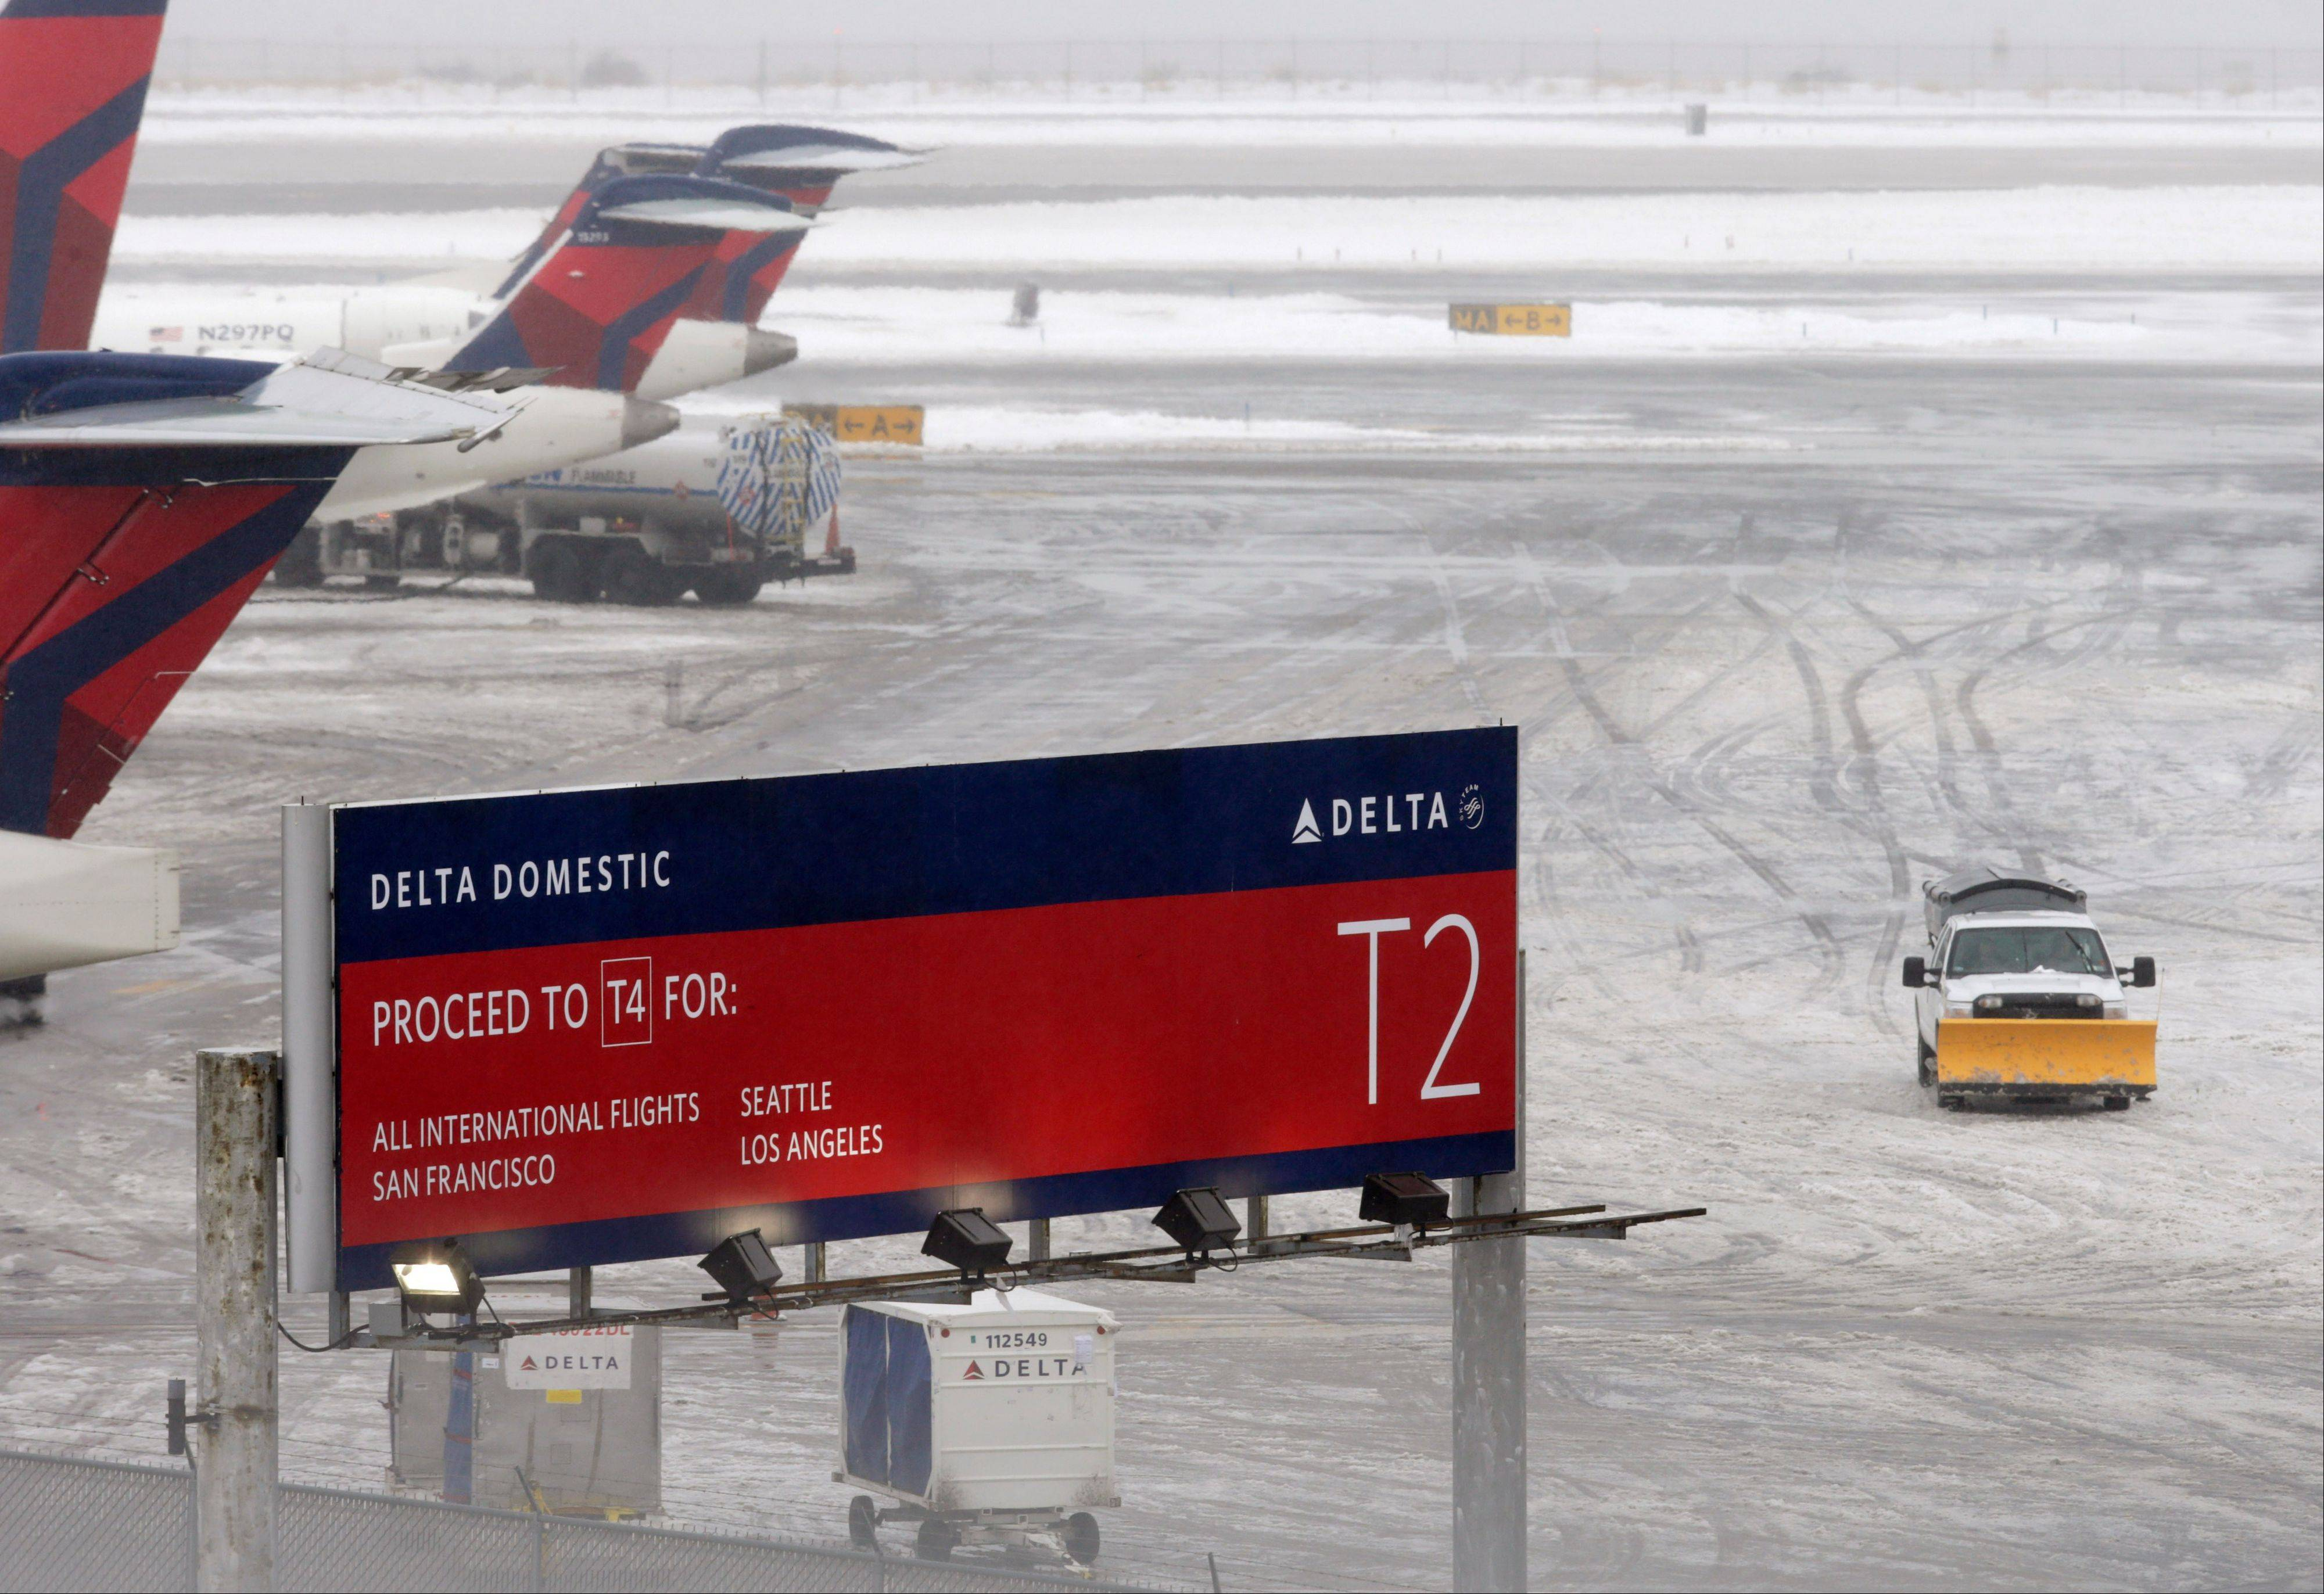 A snowplow makes its way on a slushy patch between two terminals after a Delta flight from Toronto to New York skidded off the runway into snow at Kennedy International Airport, temporarily halting all air travel into and out of the airport, Sunday in New York.